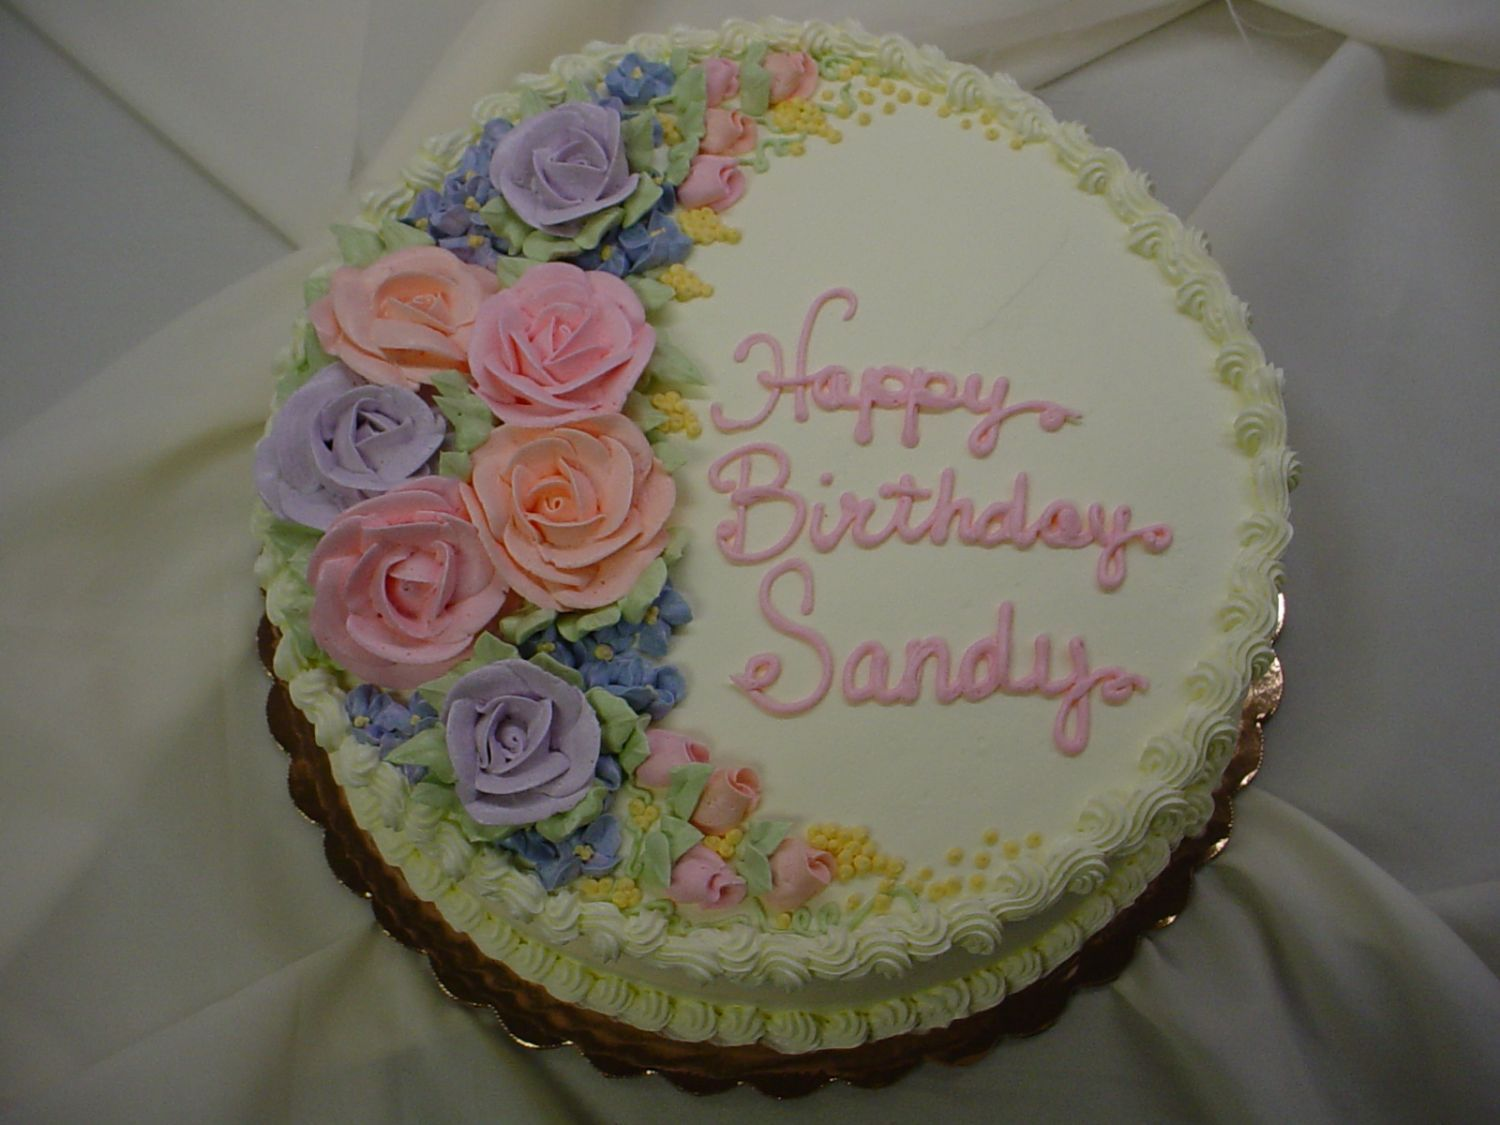 Birthday cake with buttercream filling